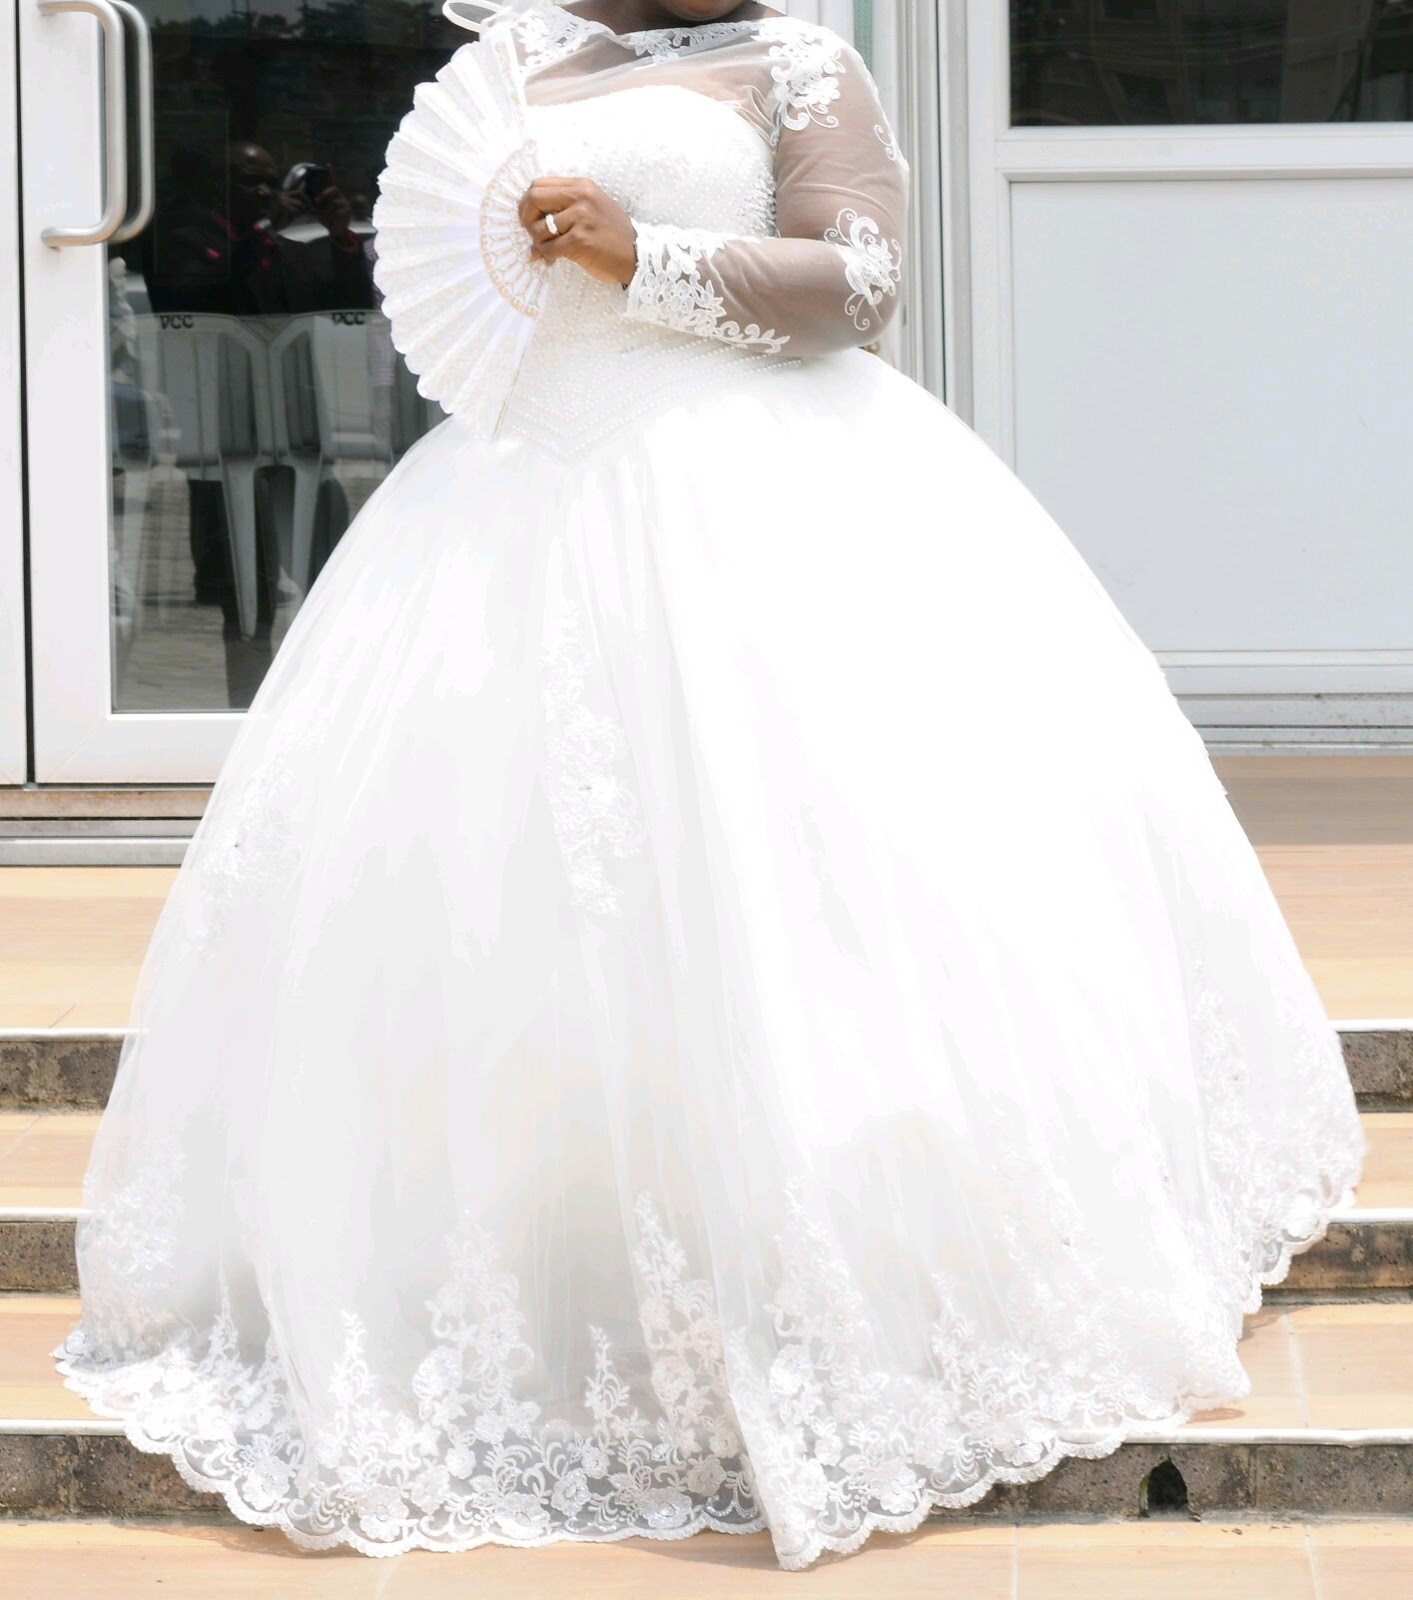 Wedding Dresses For Fat Girls 46 Awesome Saturday September